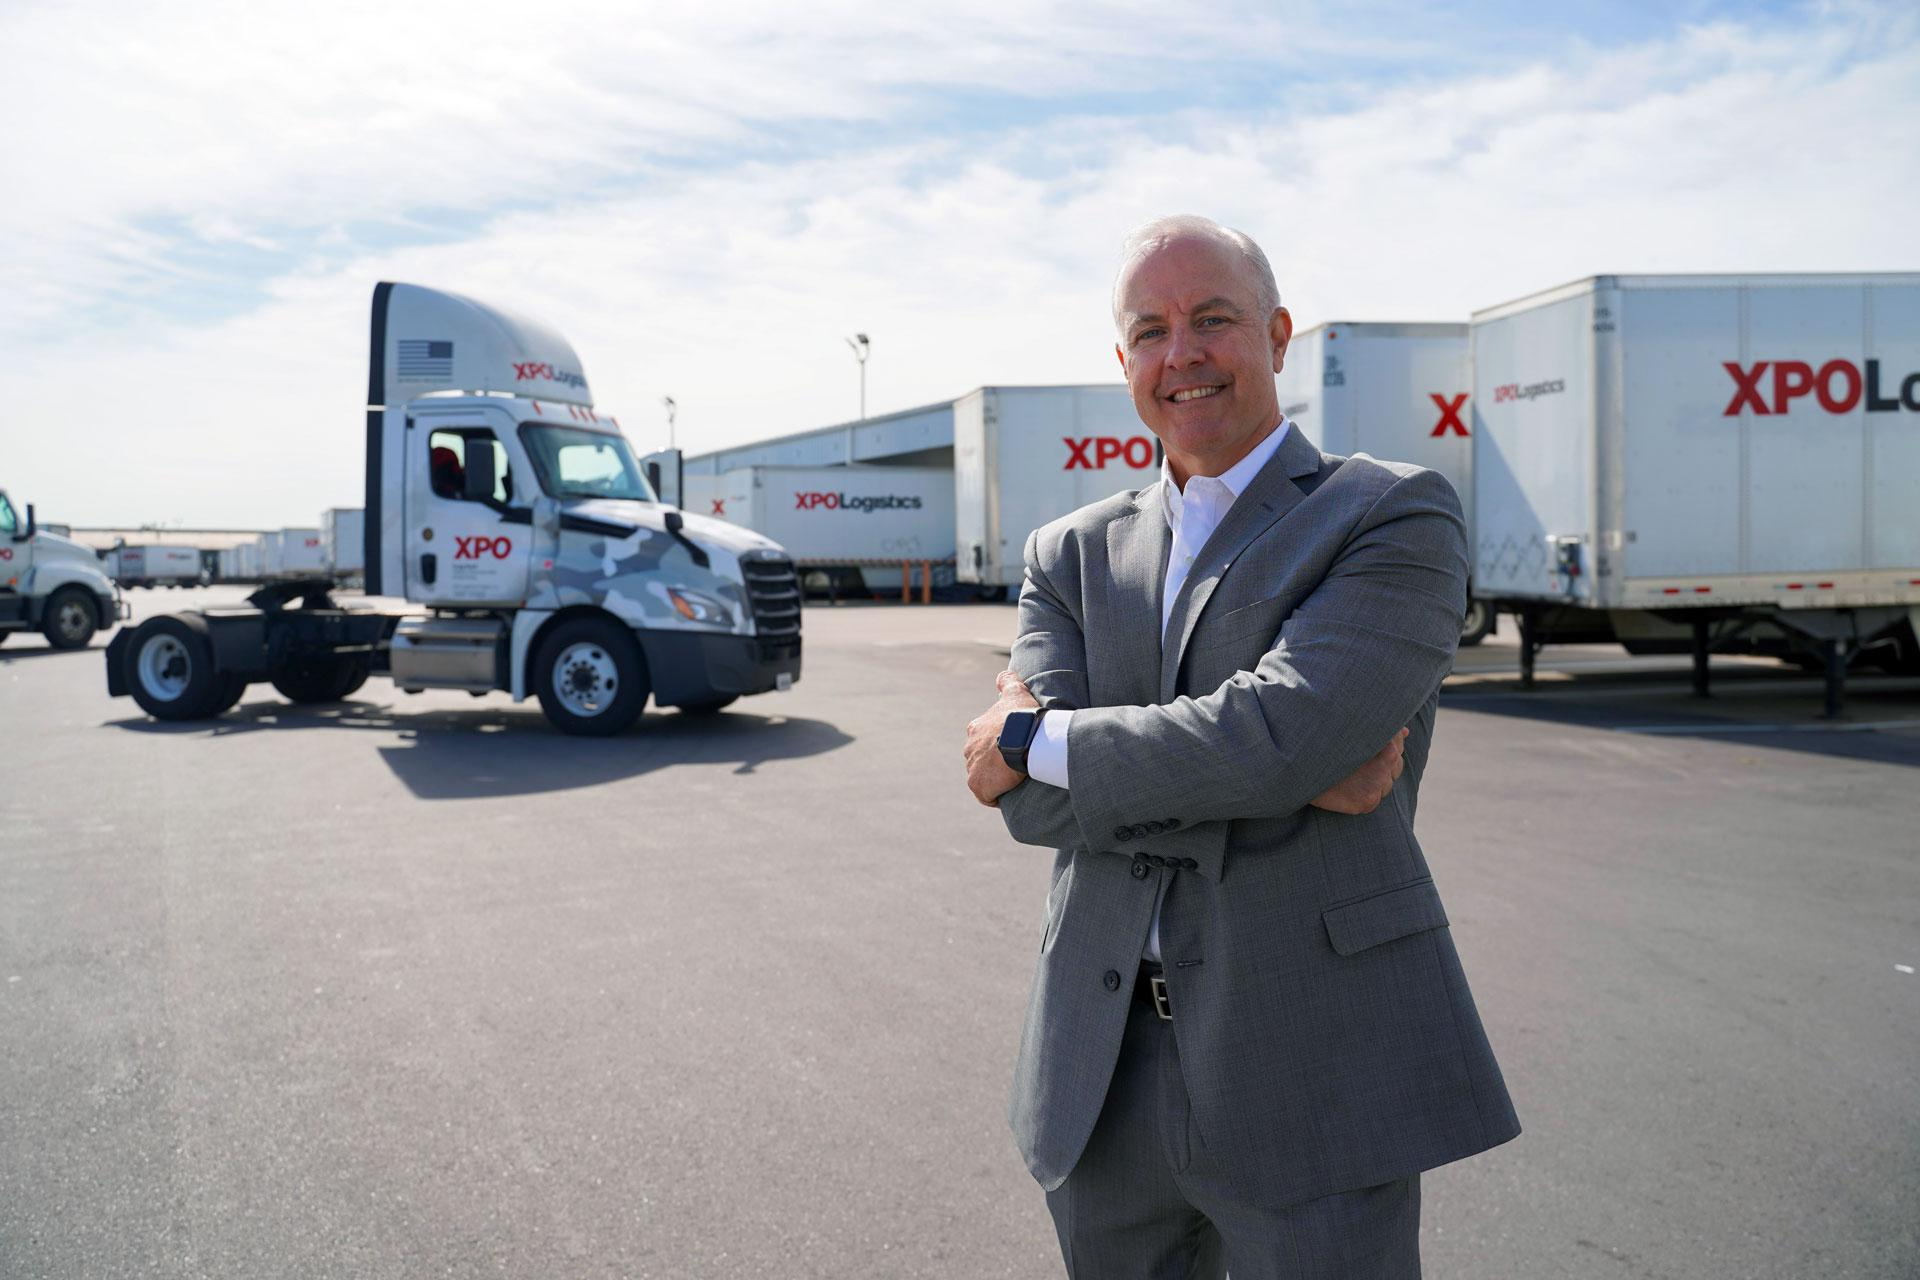 Dennis McCaffrey stands in front of a military-wrapped XPO tractor.